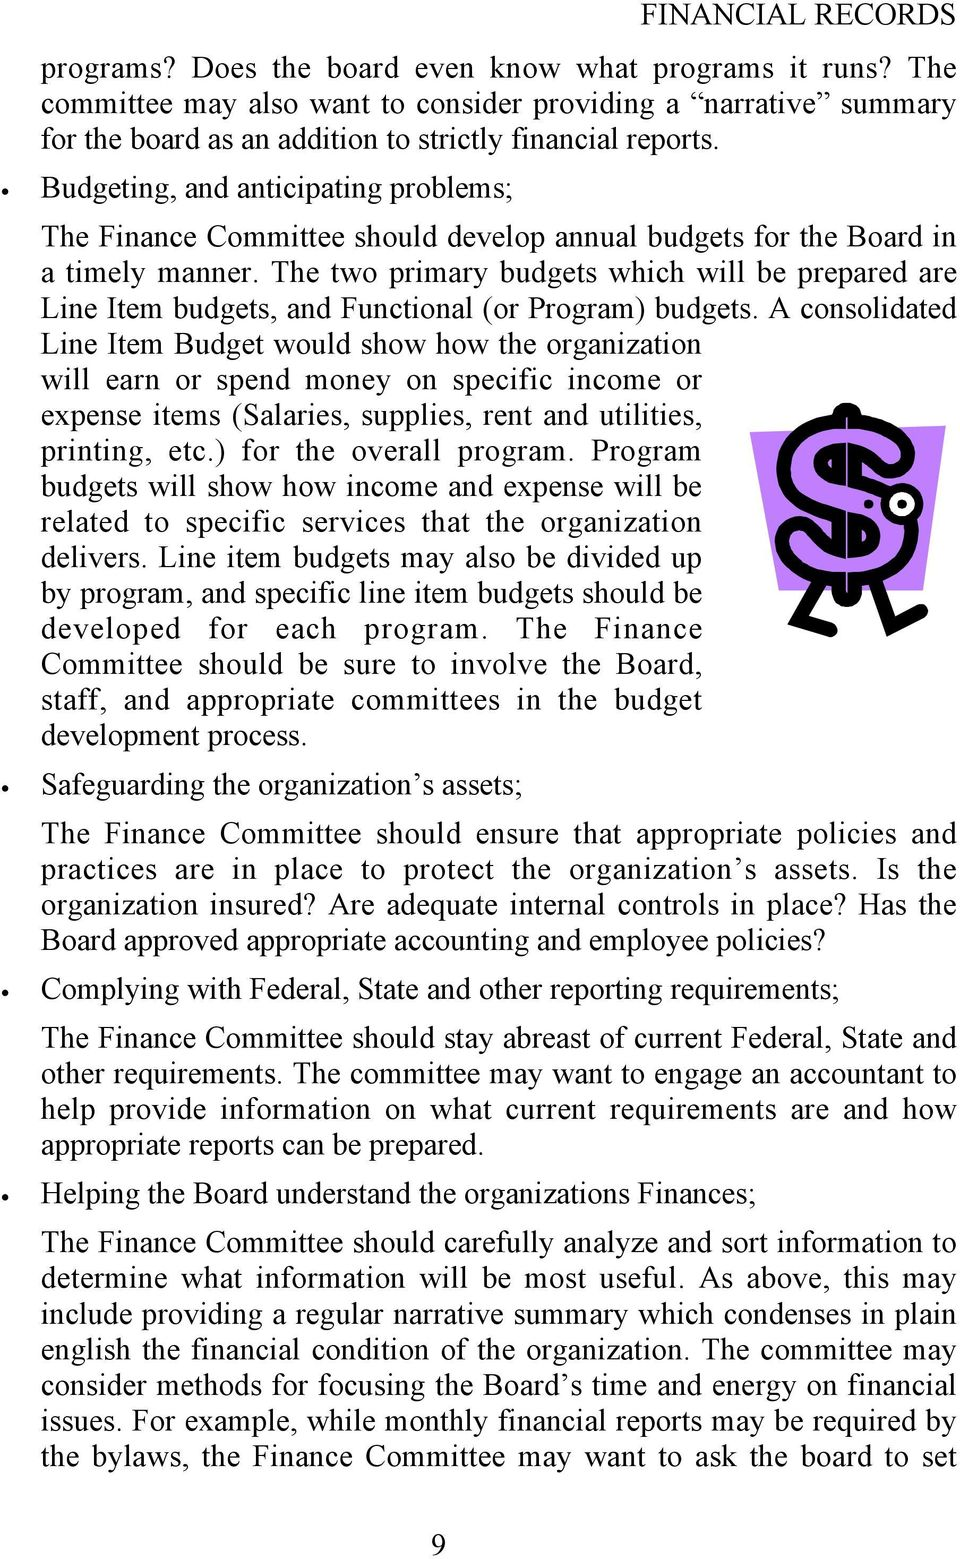 Budgeting, and anticipating problems; The Finance Committee should develop annual budgets for the Board in a timely manner.